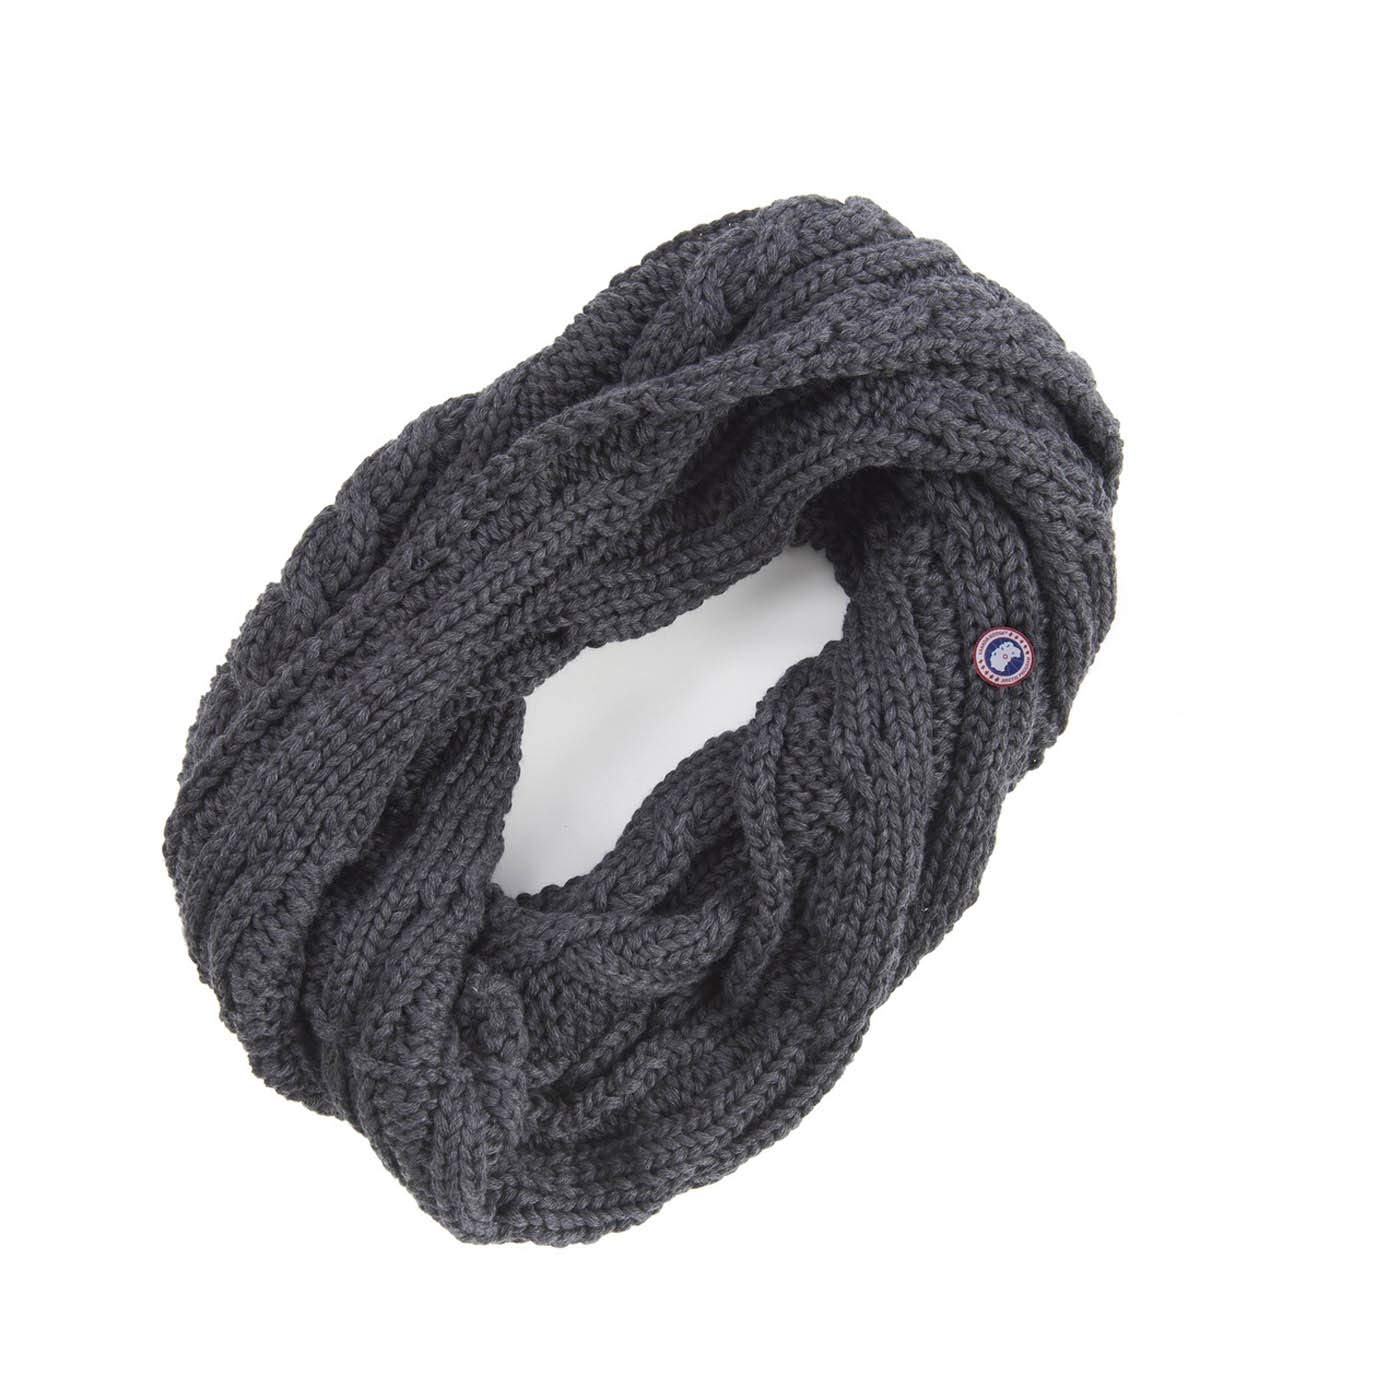 Canada Goose Merino Chunky Cable Snood Graphite 5313L One Size